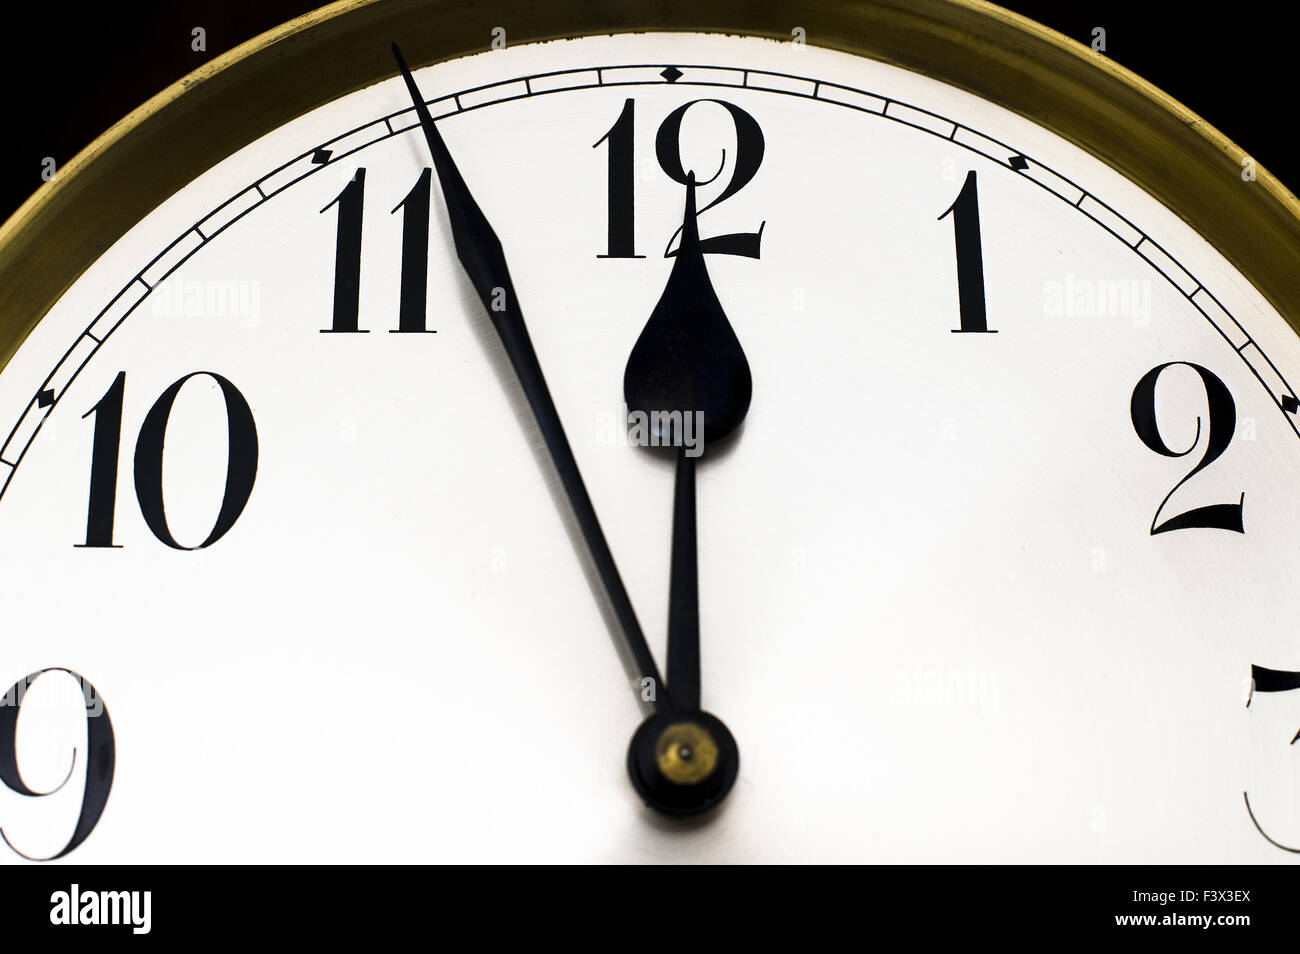 Five minutes to noon. - Stock Image